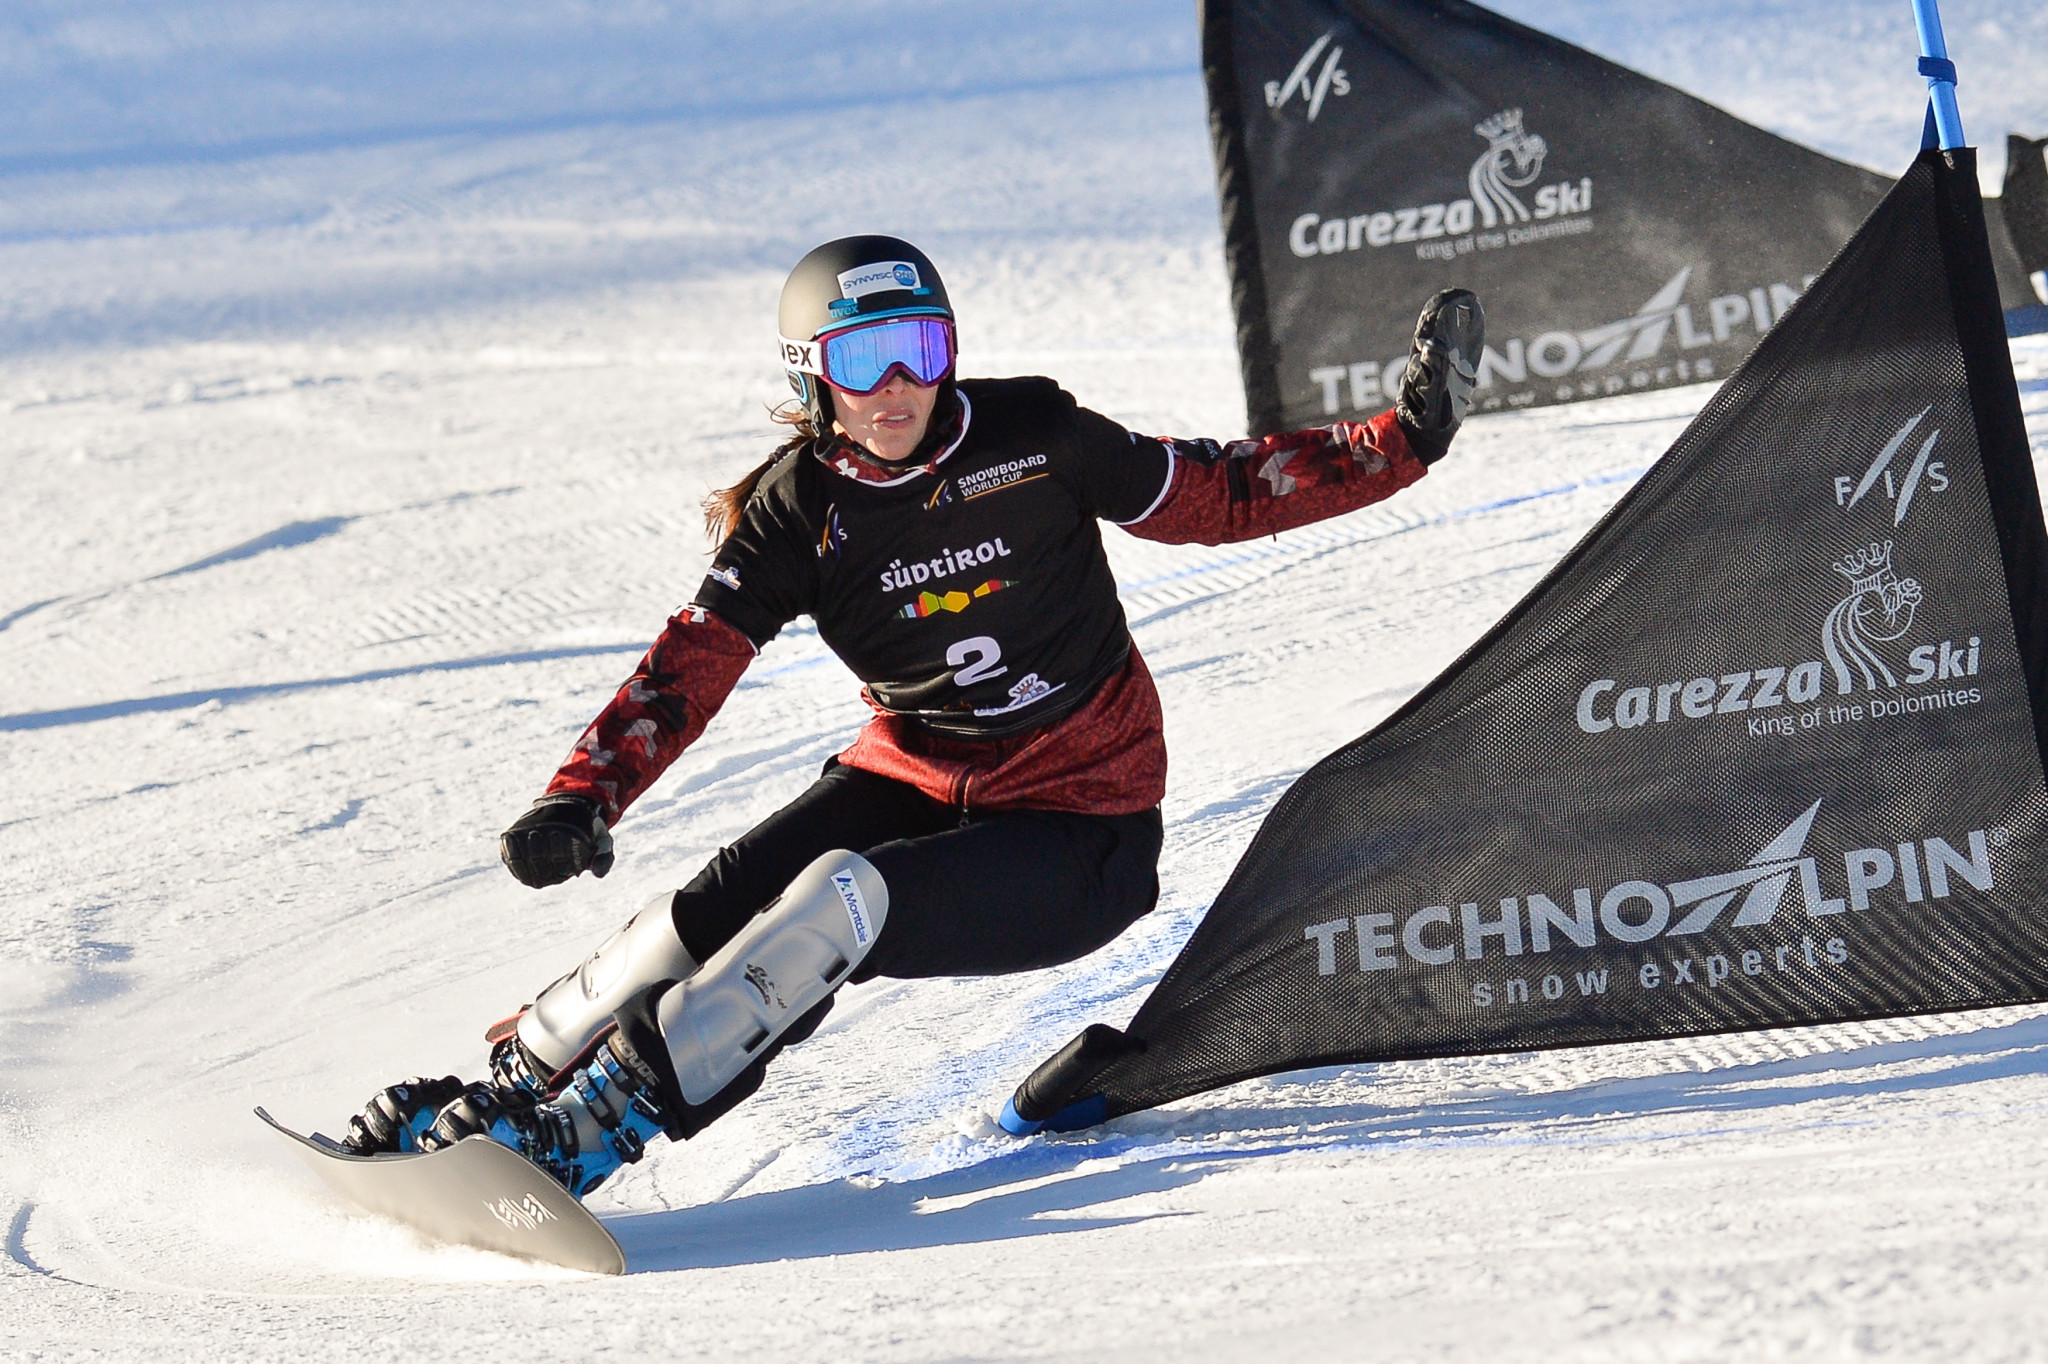 Carezza confirmed as a host for 2021-2022 FIS Alpine Snowboard World Cup